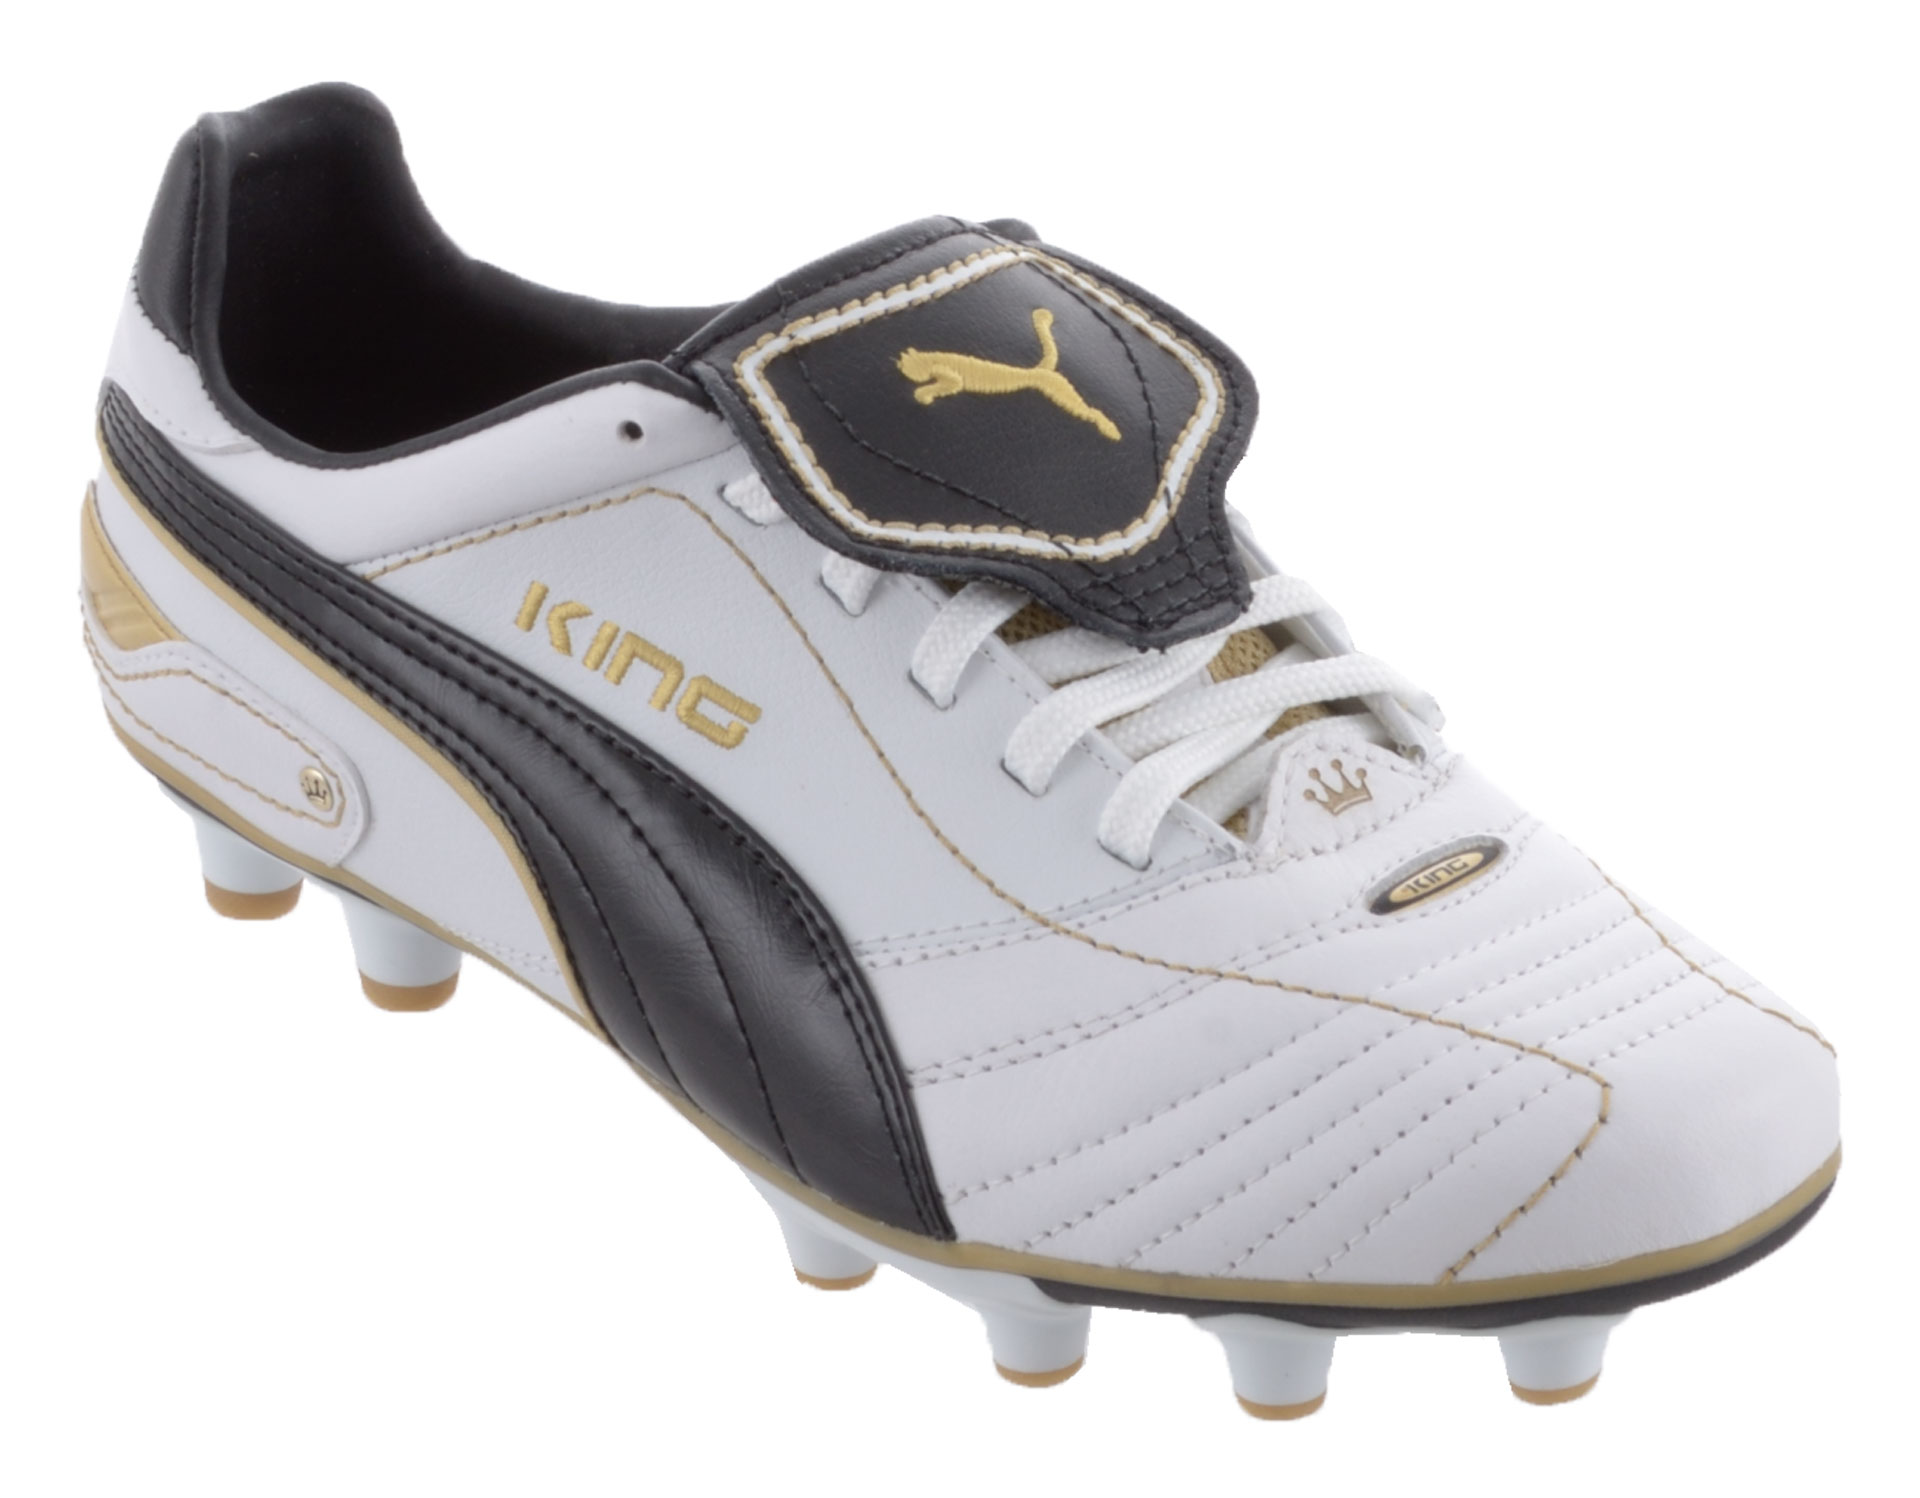 Puma King Finale I FG Youth Soccer Cleats (101999-02-OR) Various ... dd51bb88d